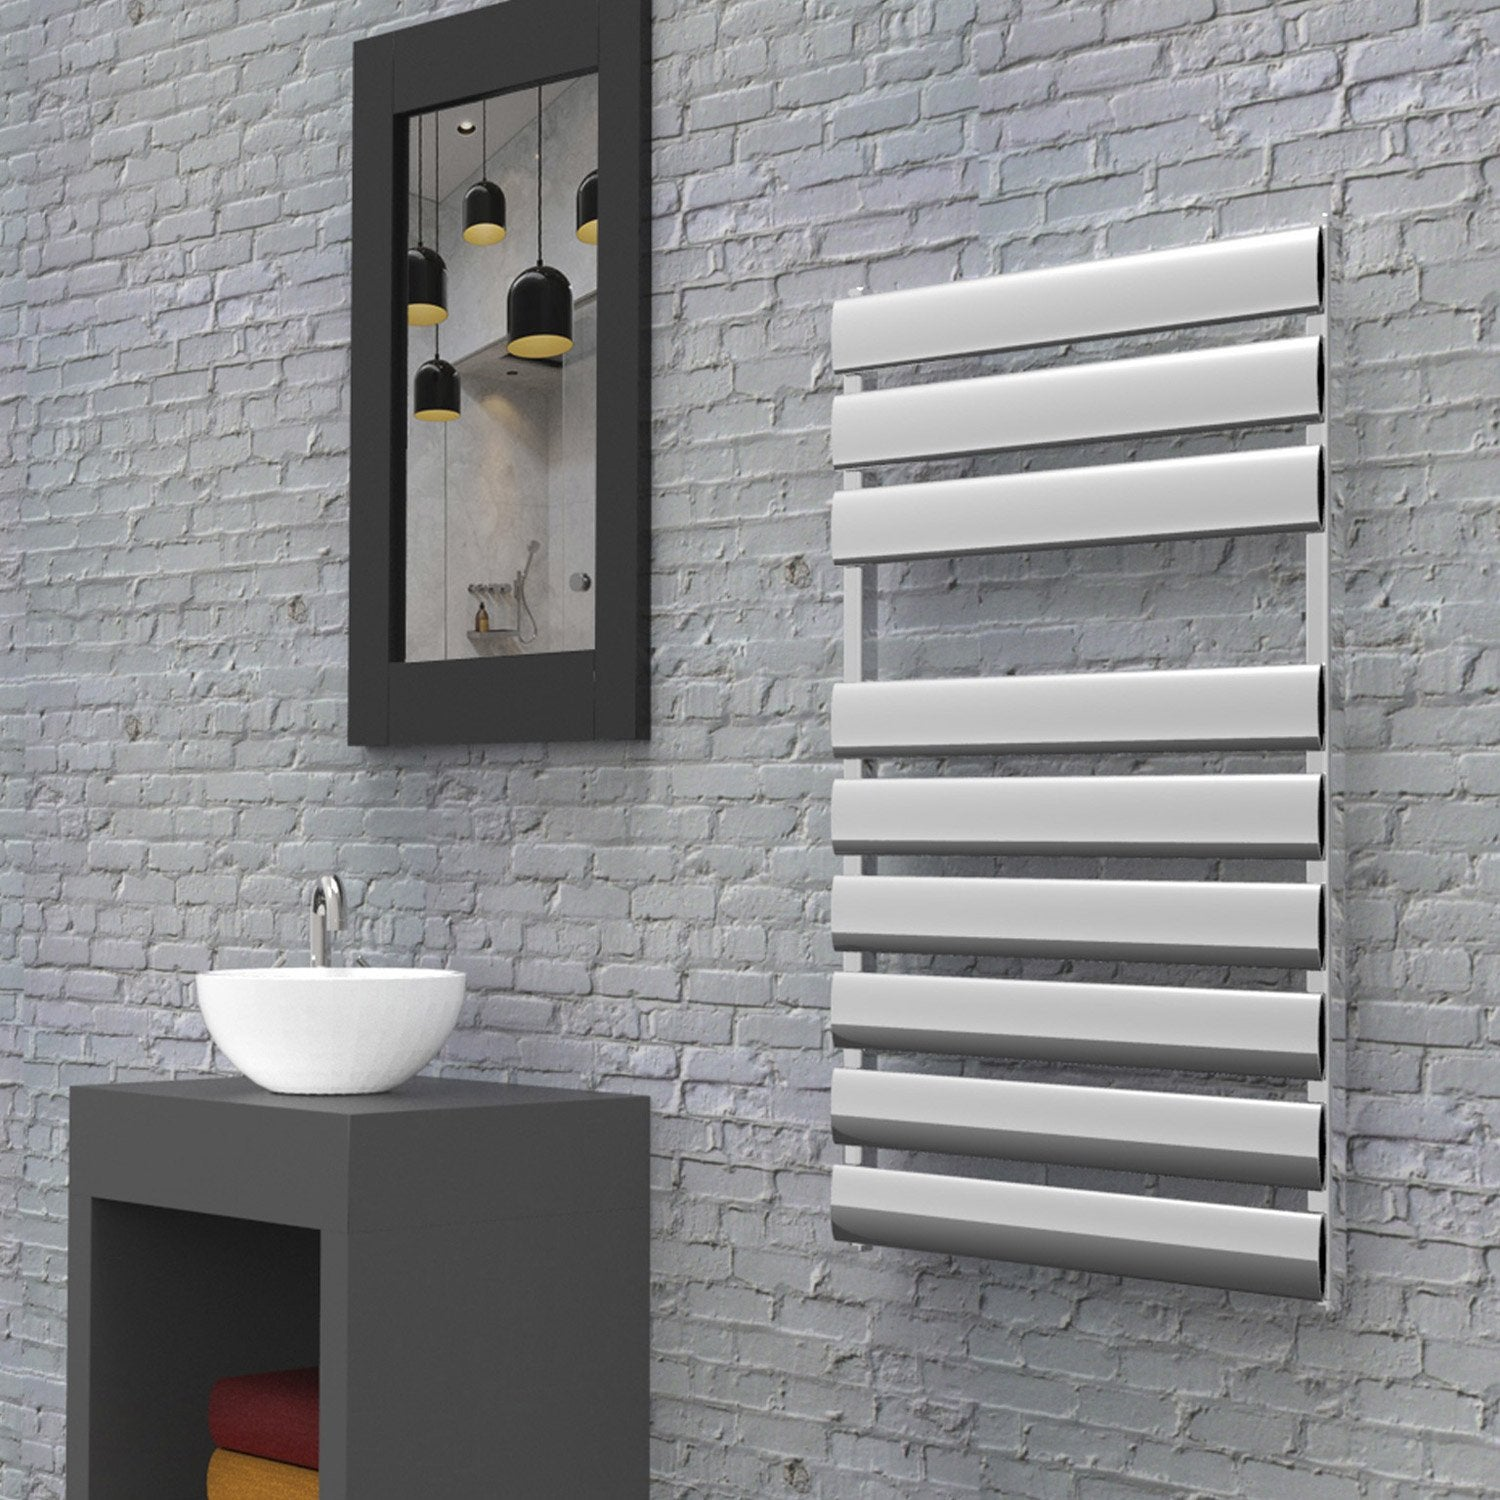 radiateur seche serviette eau chaude leroy merlin s che. Black Bedroom Furniture Sets. Home Design Ideas